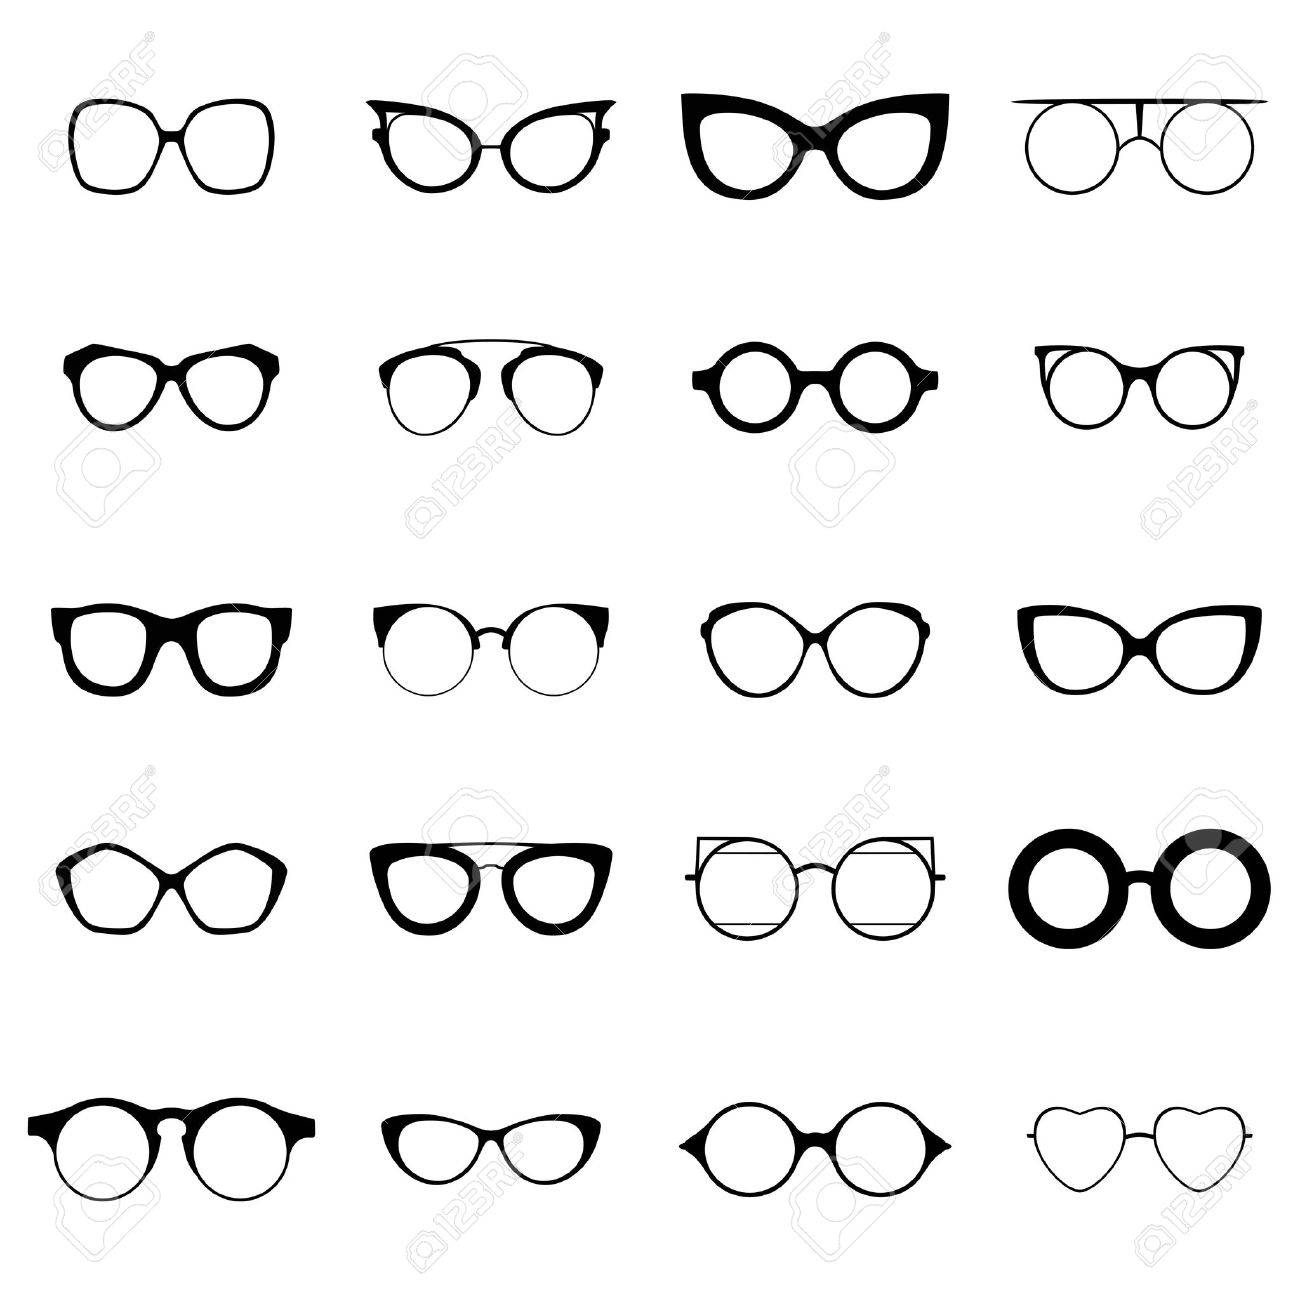 Collection of various glasses. To be worn by women, men and children. Eye glasses set. Vector illustration EPS 10 - 58299824